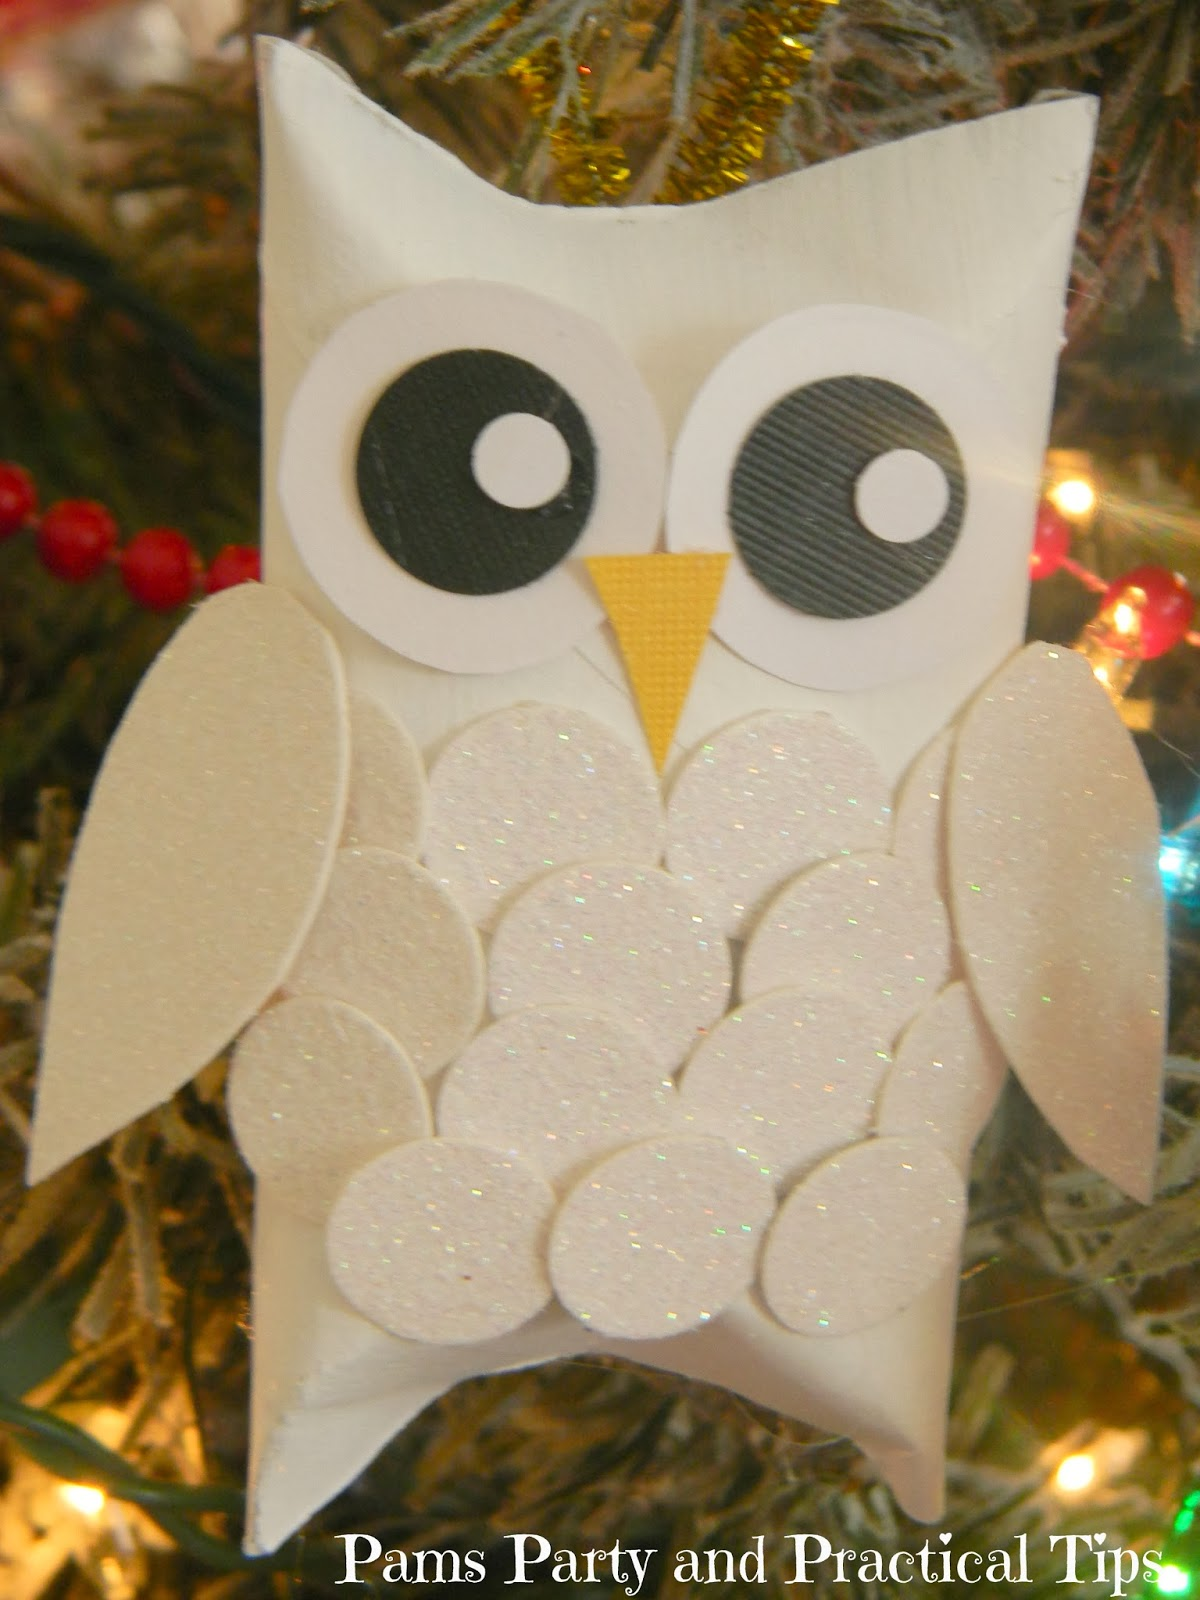 Pams party practical tips snow owl ornaments Toilet paper roll centerpieces